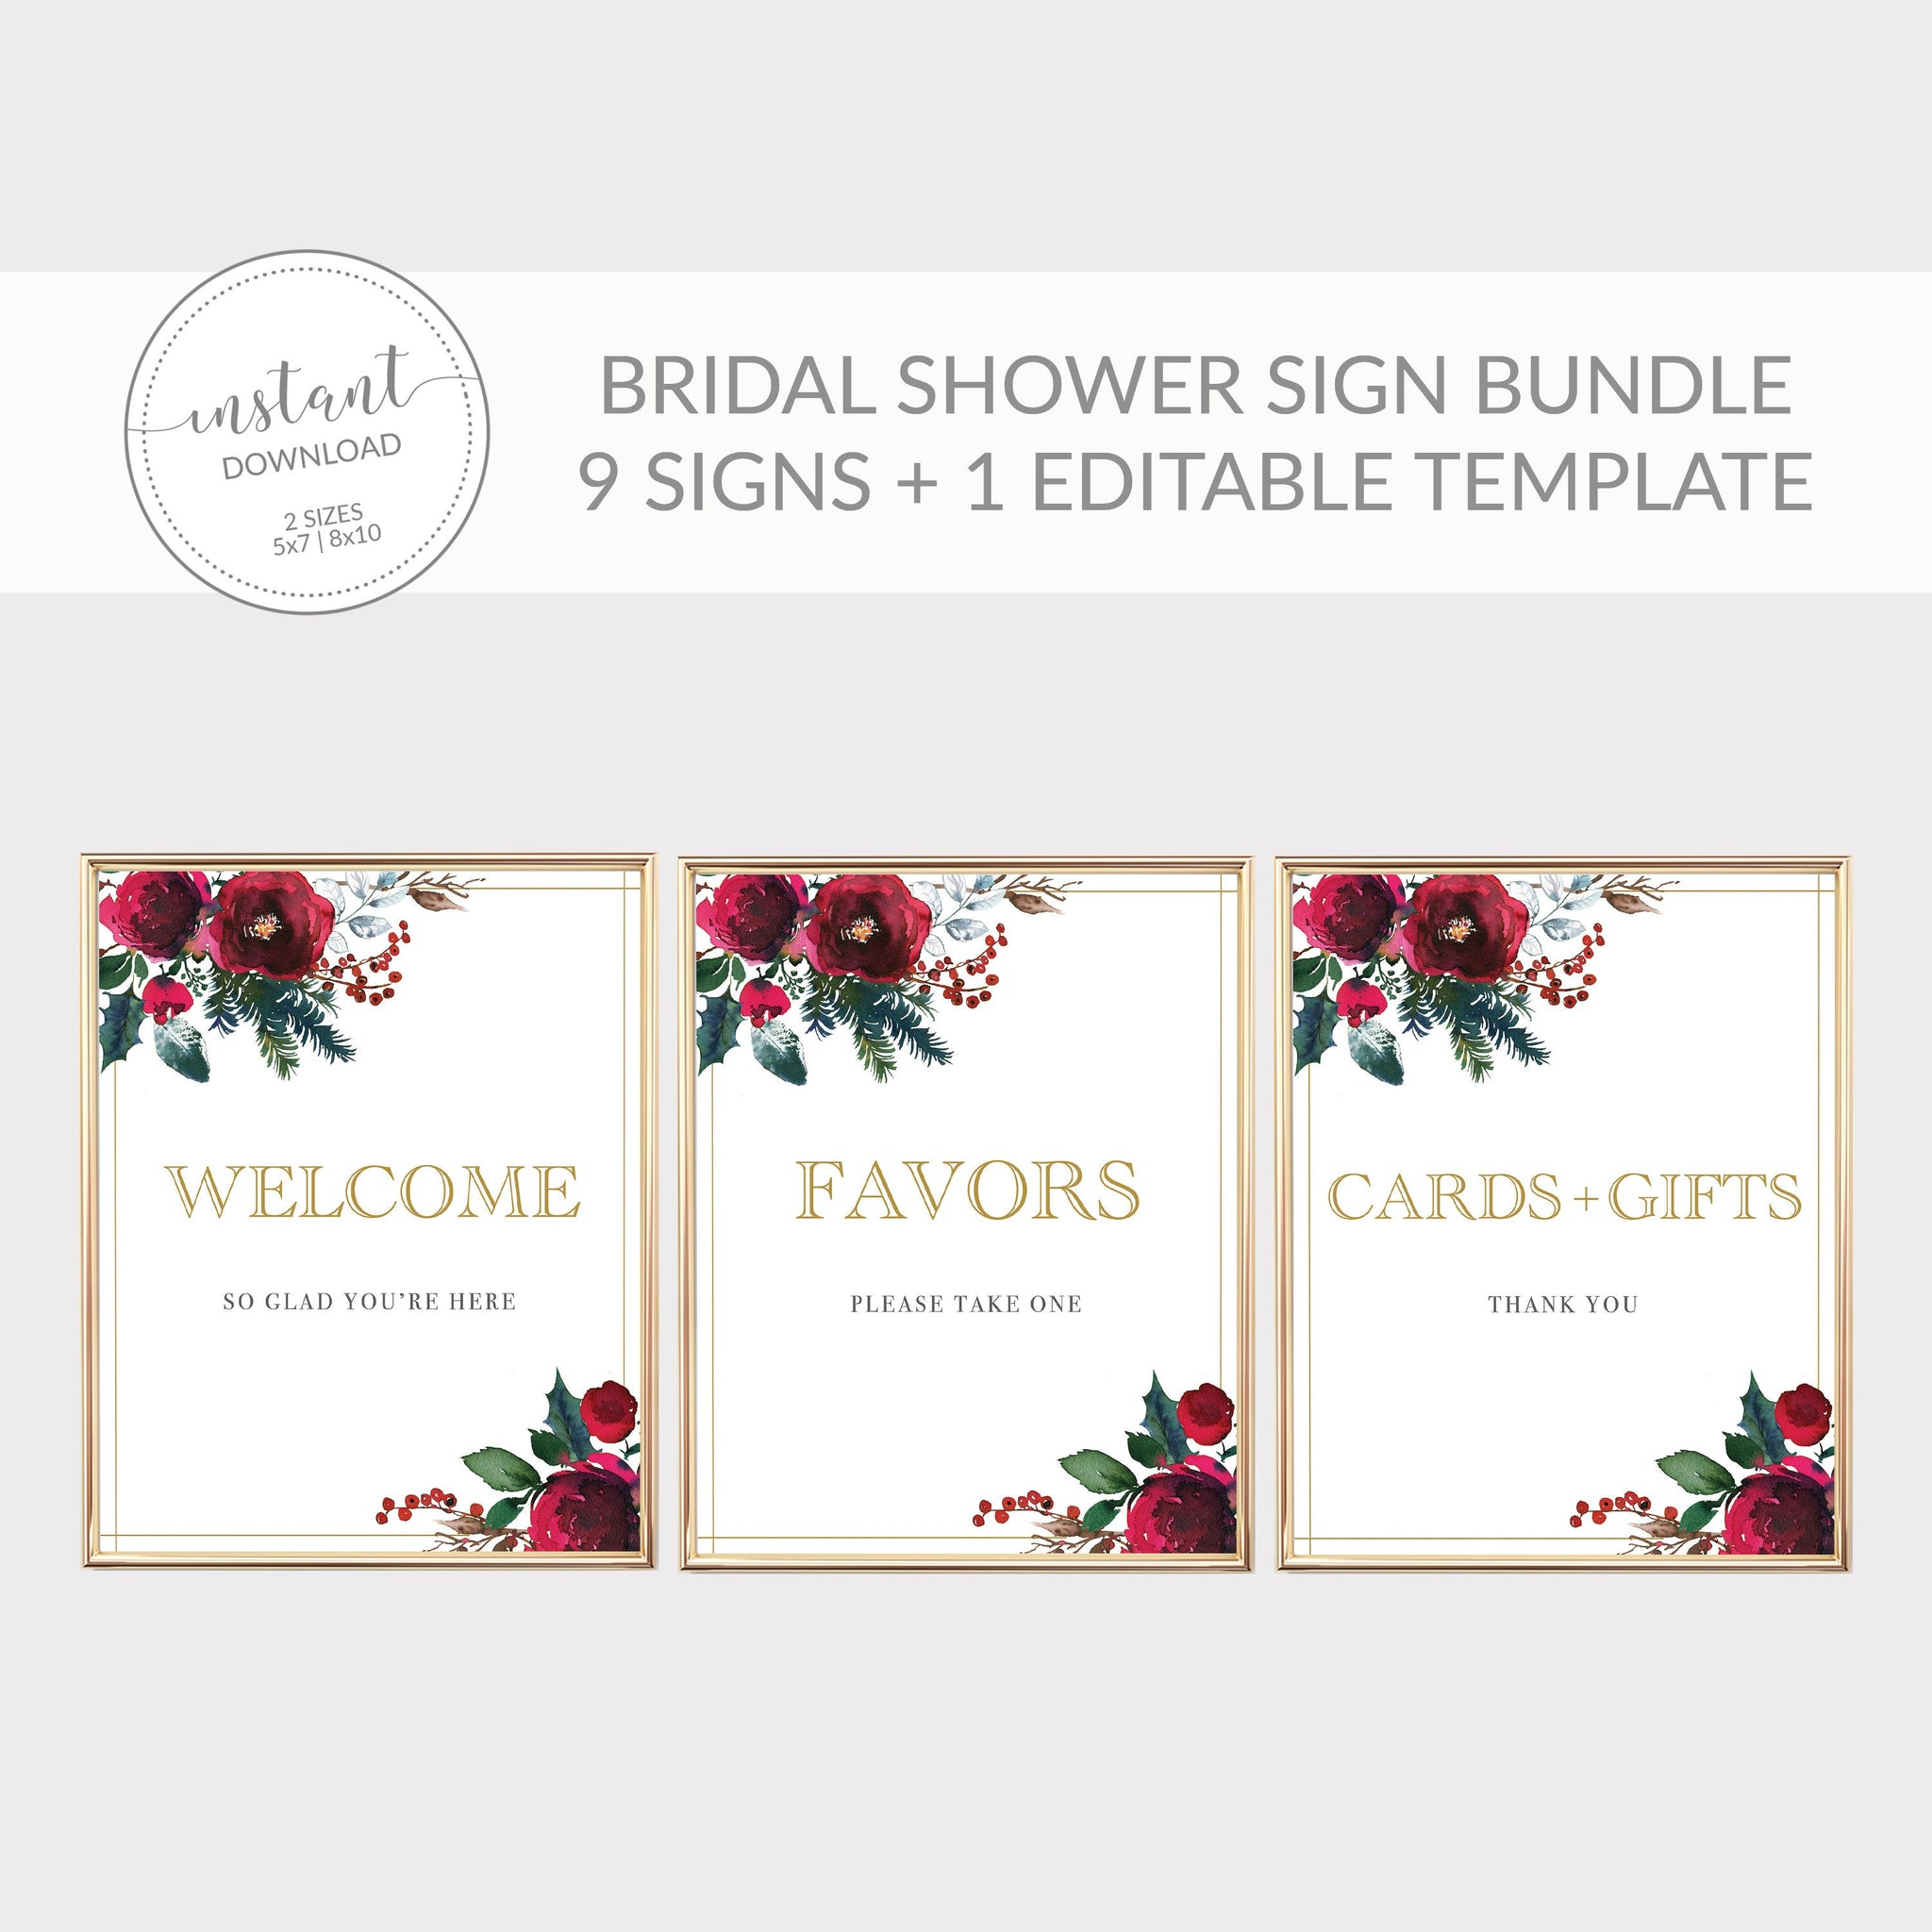 Christmas Bridal Shower Sign Bundle, Christmas Bridal Shower Decorations, Holiday Bridal Shower Table Signs, DIGITAL DOWNLOAD CG100